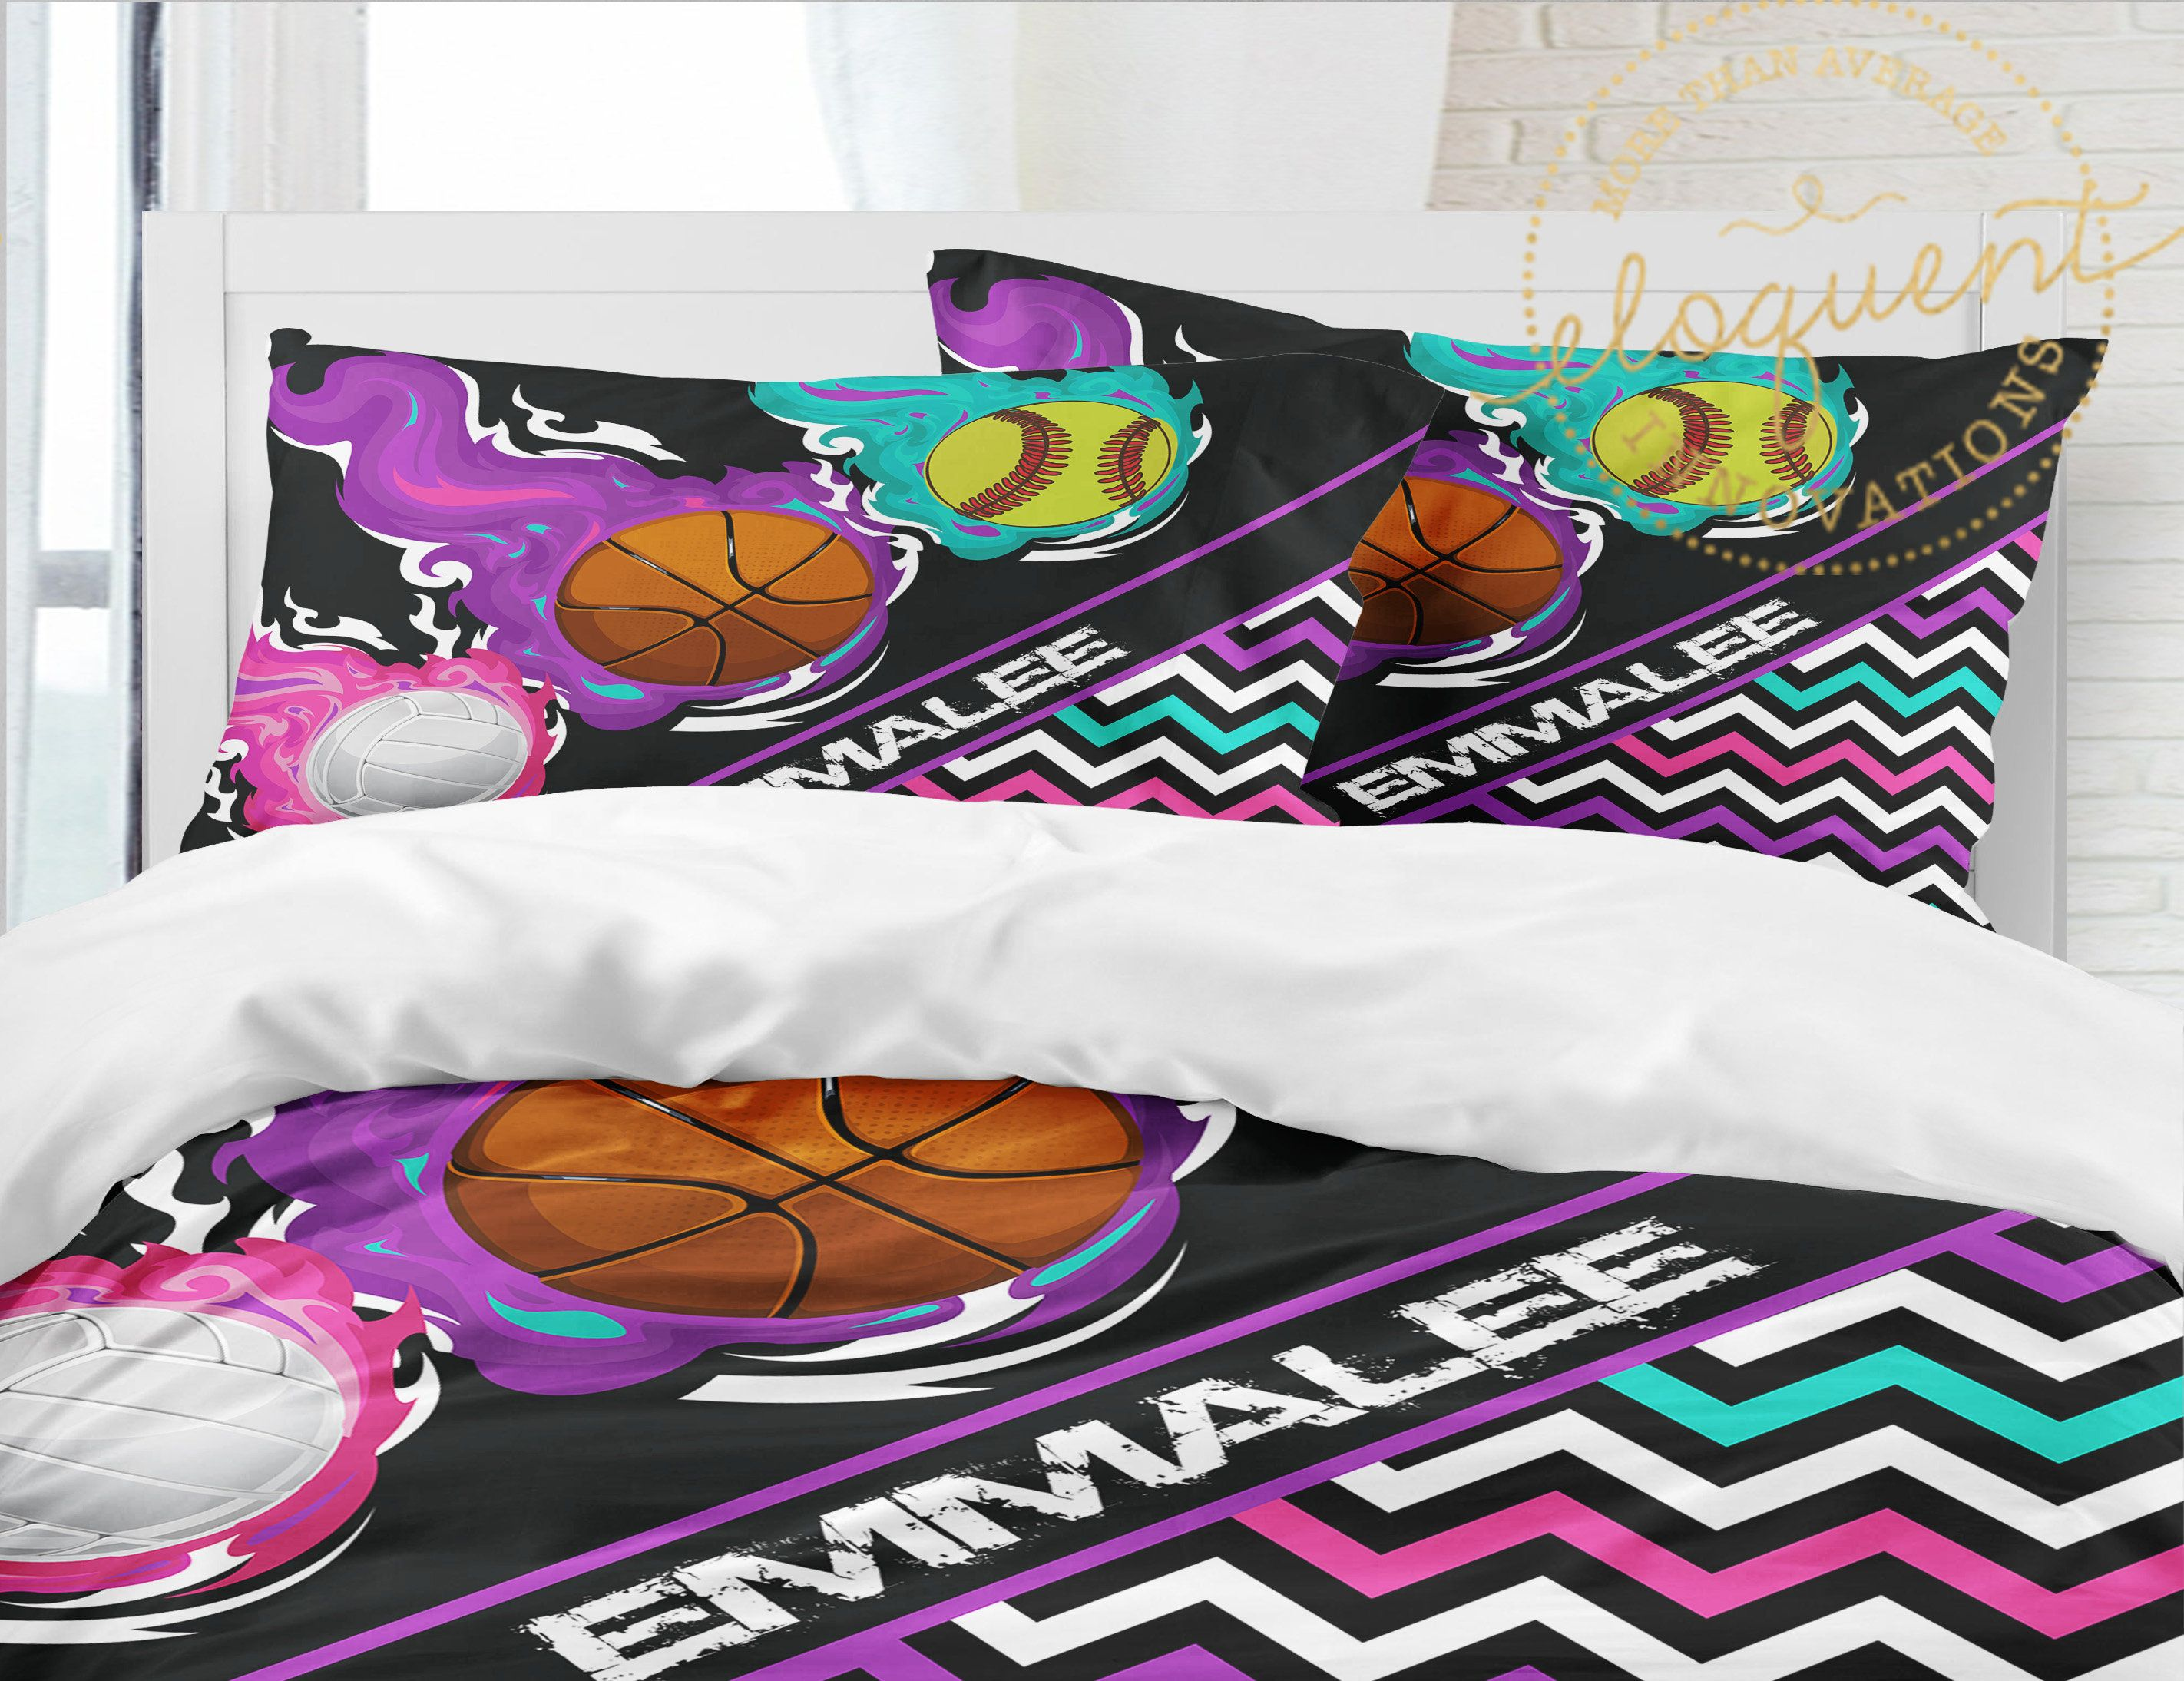 Softball Bedding Set Girls Sports Comforter Basketball Volleyball Kids Custom Personalized With Name King Queen Full Twin Xl 411 With Images Girls Sports Bedding Sports Bedding Sports Comforter